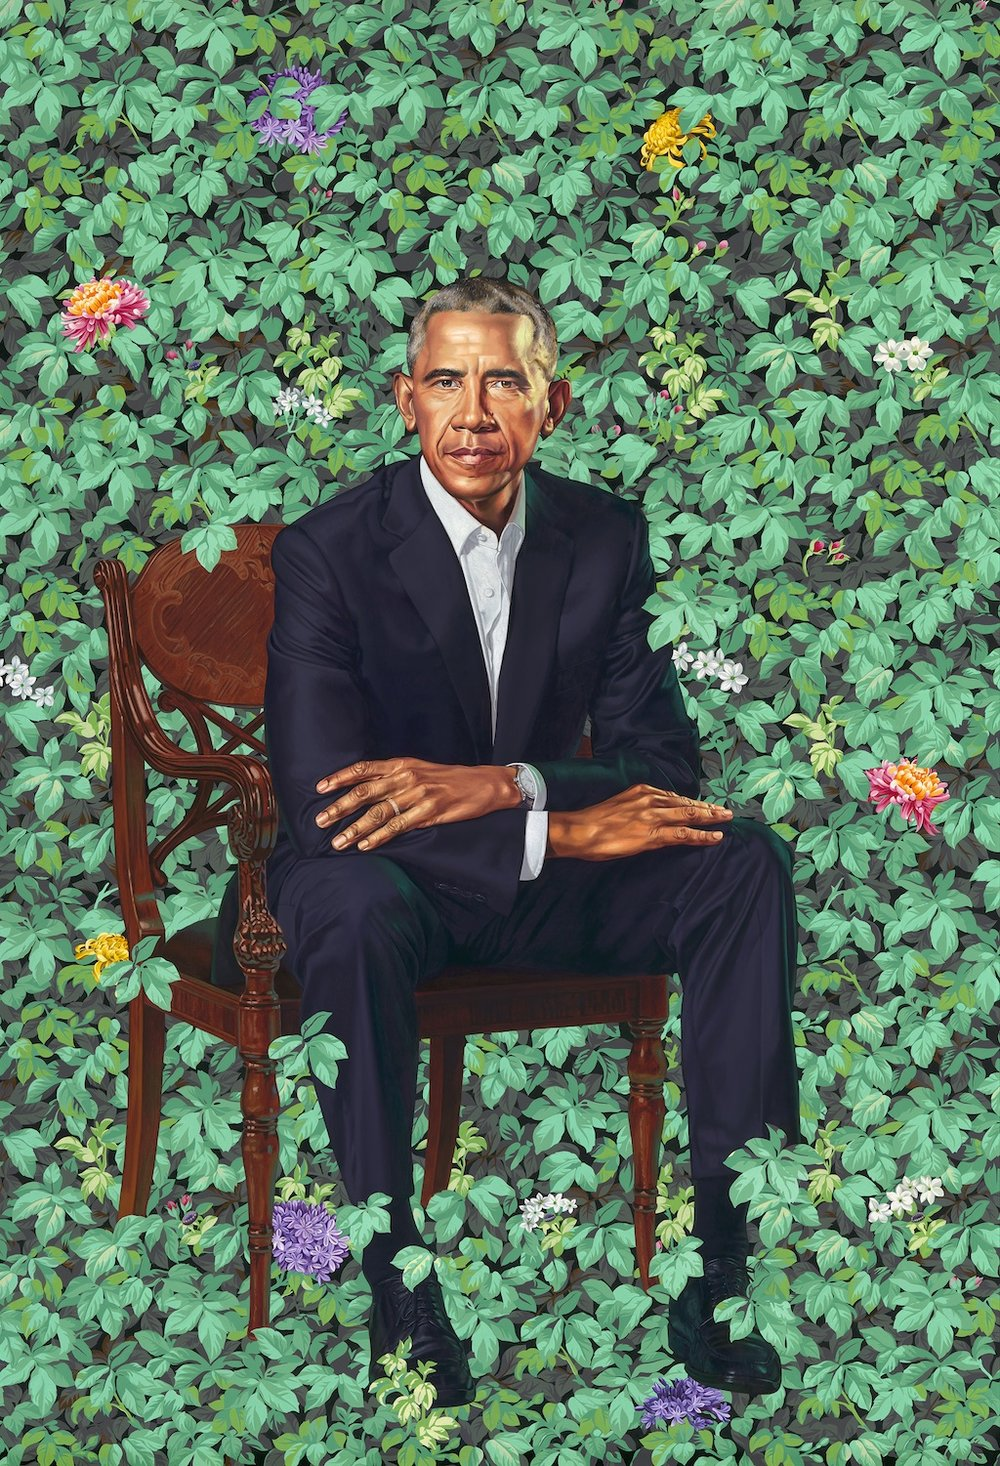 Kehinde Wiley,  Barack Obama , 2018, oil on canvas. ( http://www.artnews.com/2018/02/12/portraits-barack-michelle-obama/ )